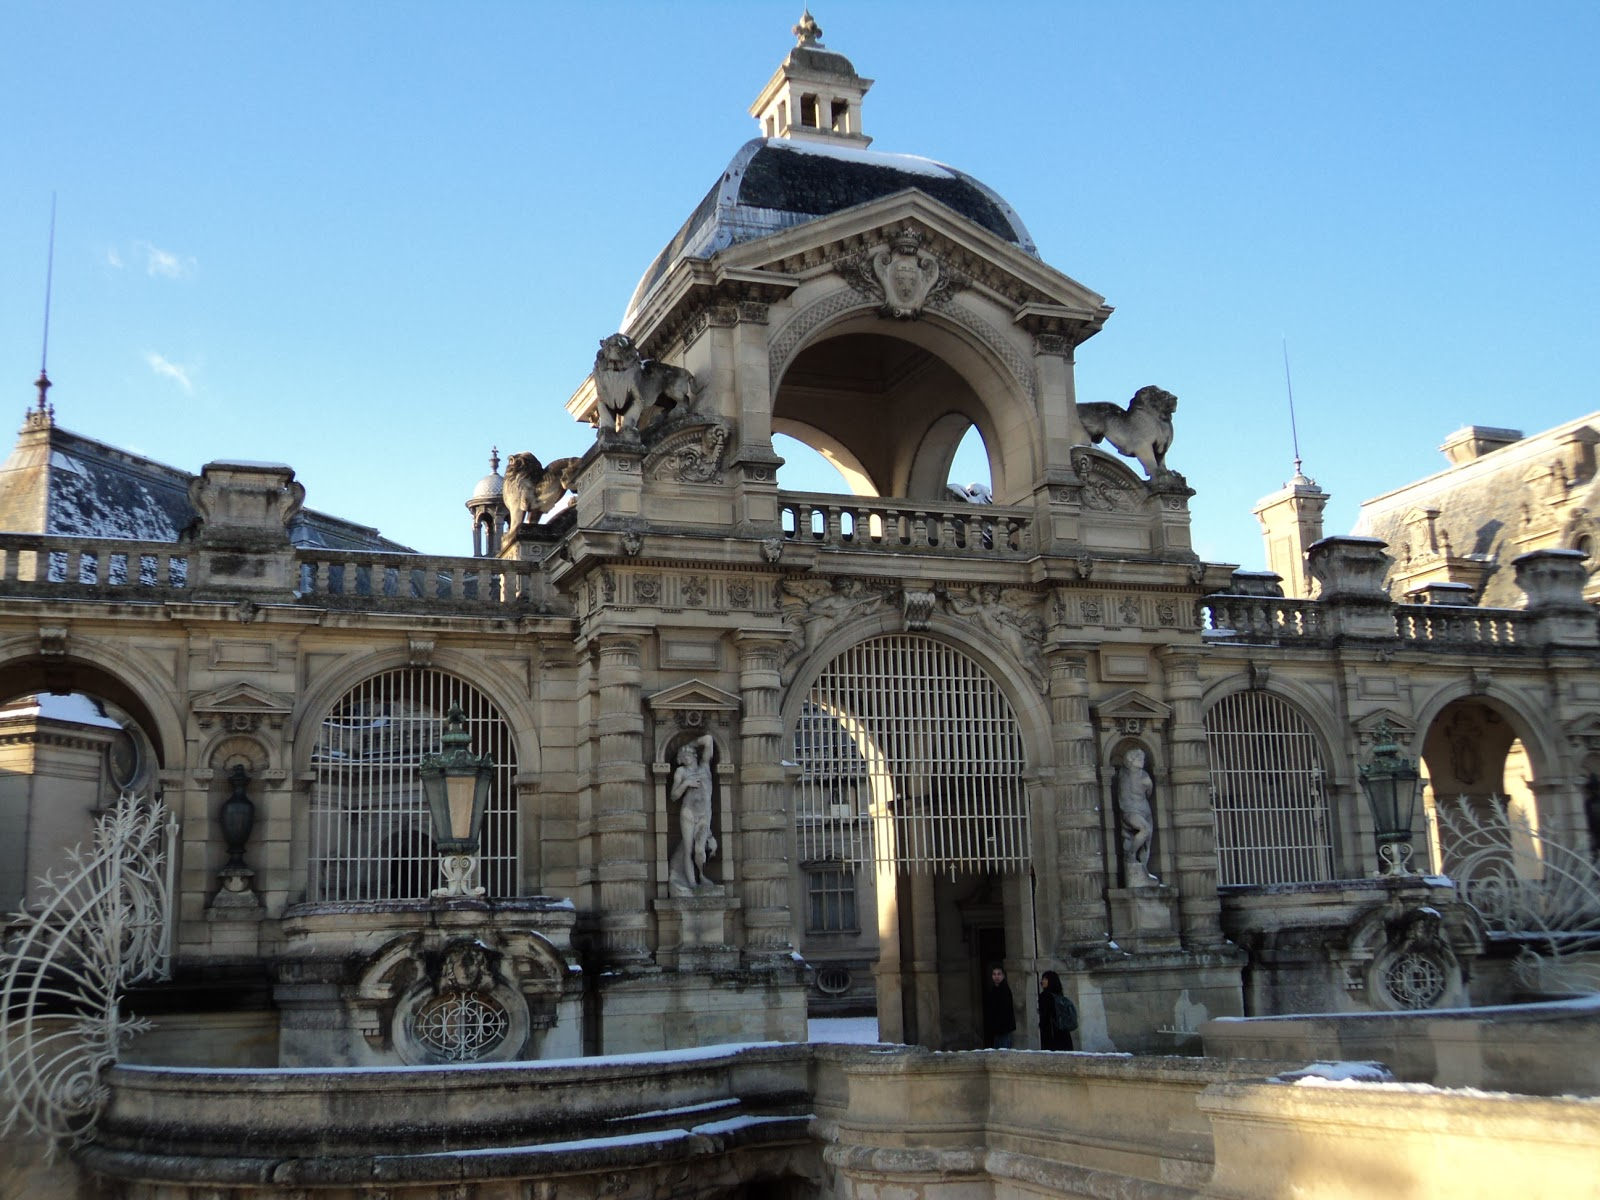 Denis 39 s blog ch teau de chantilly - Chateau de chantilly adresse ...